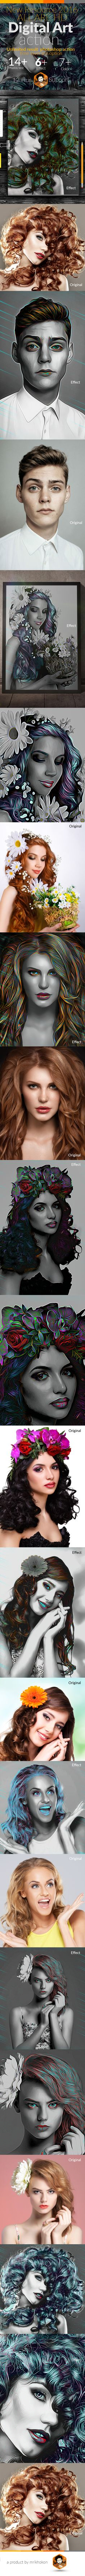 Digital Art Action - Photo Effects Actions